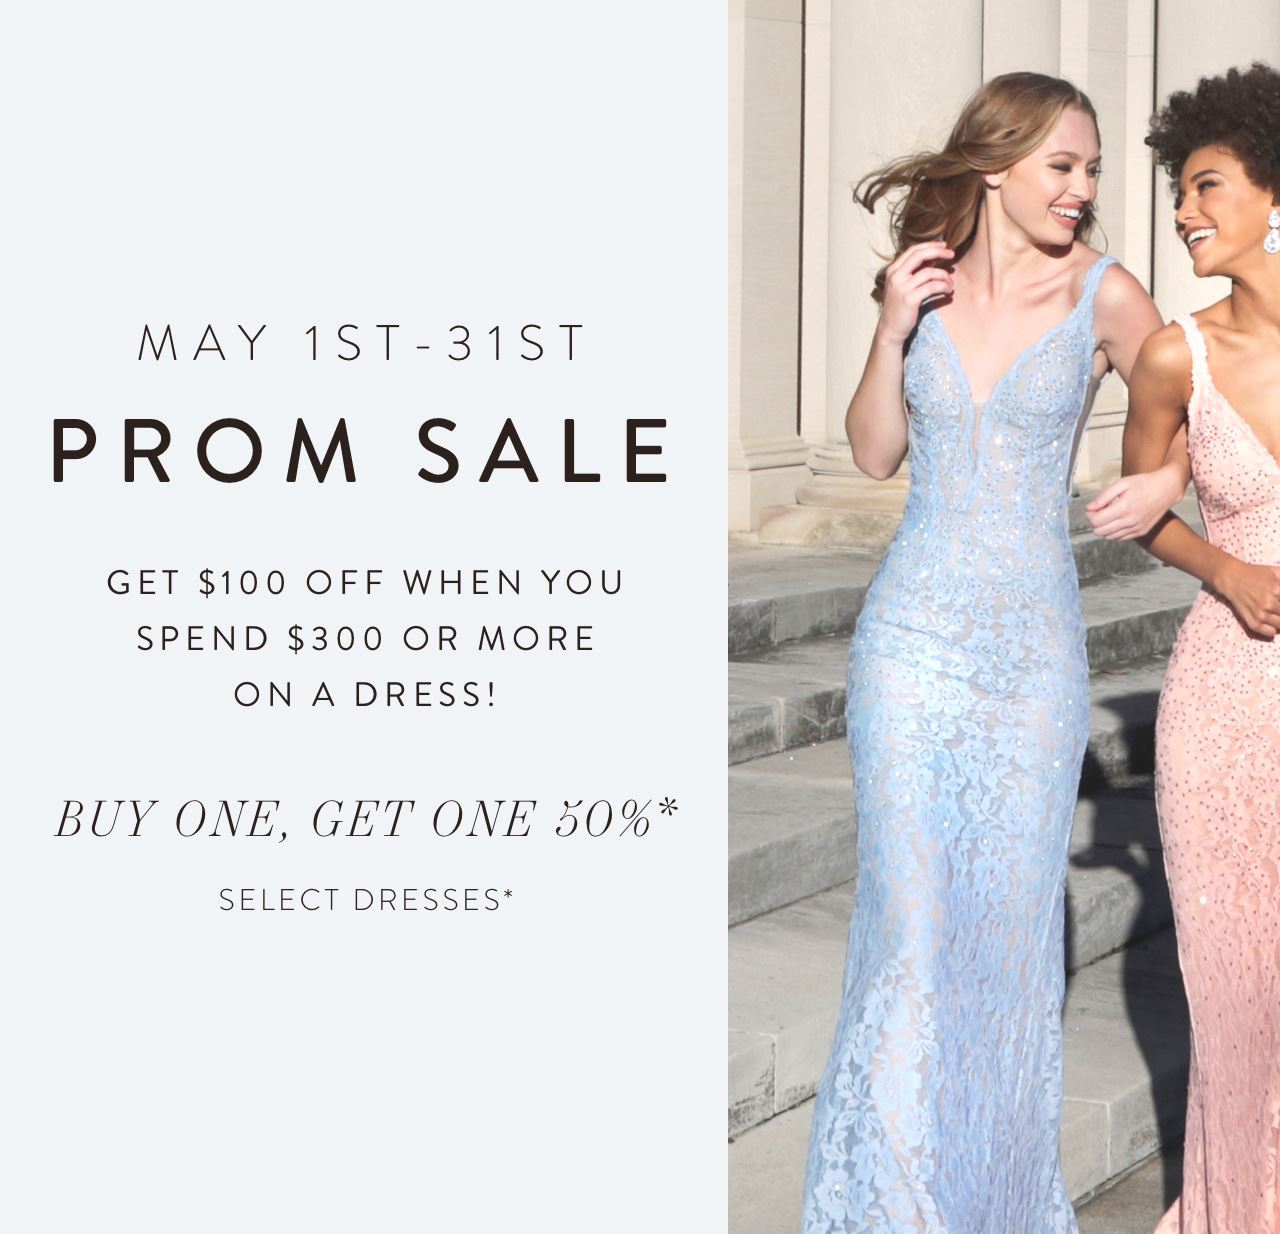 759710df51b5 Resale Shops For Prom Dresses Near Me - raveitsafe